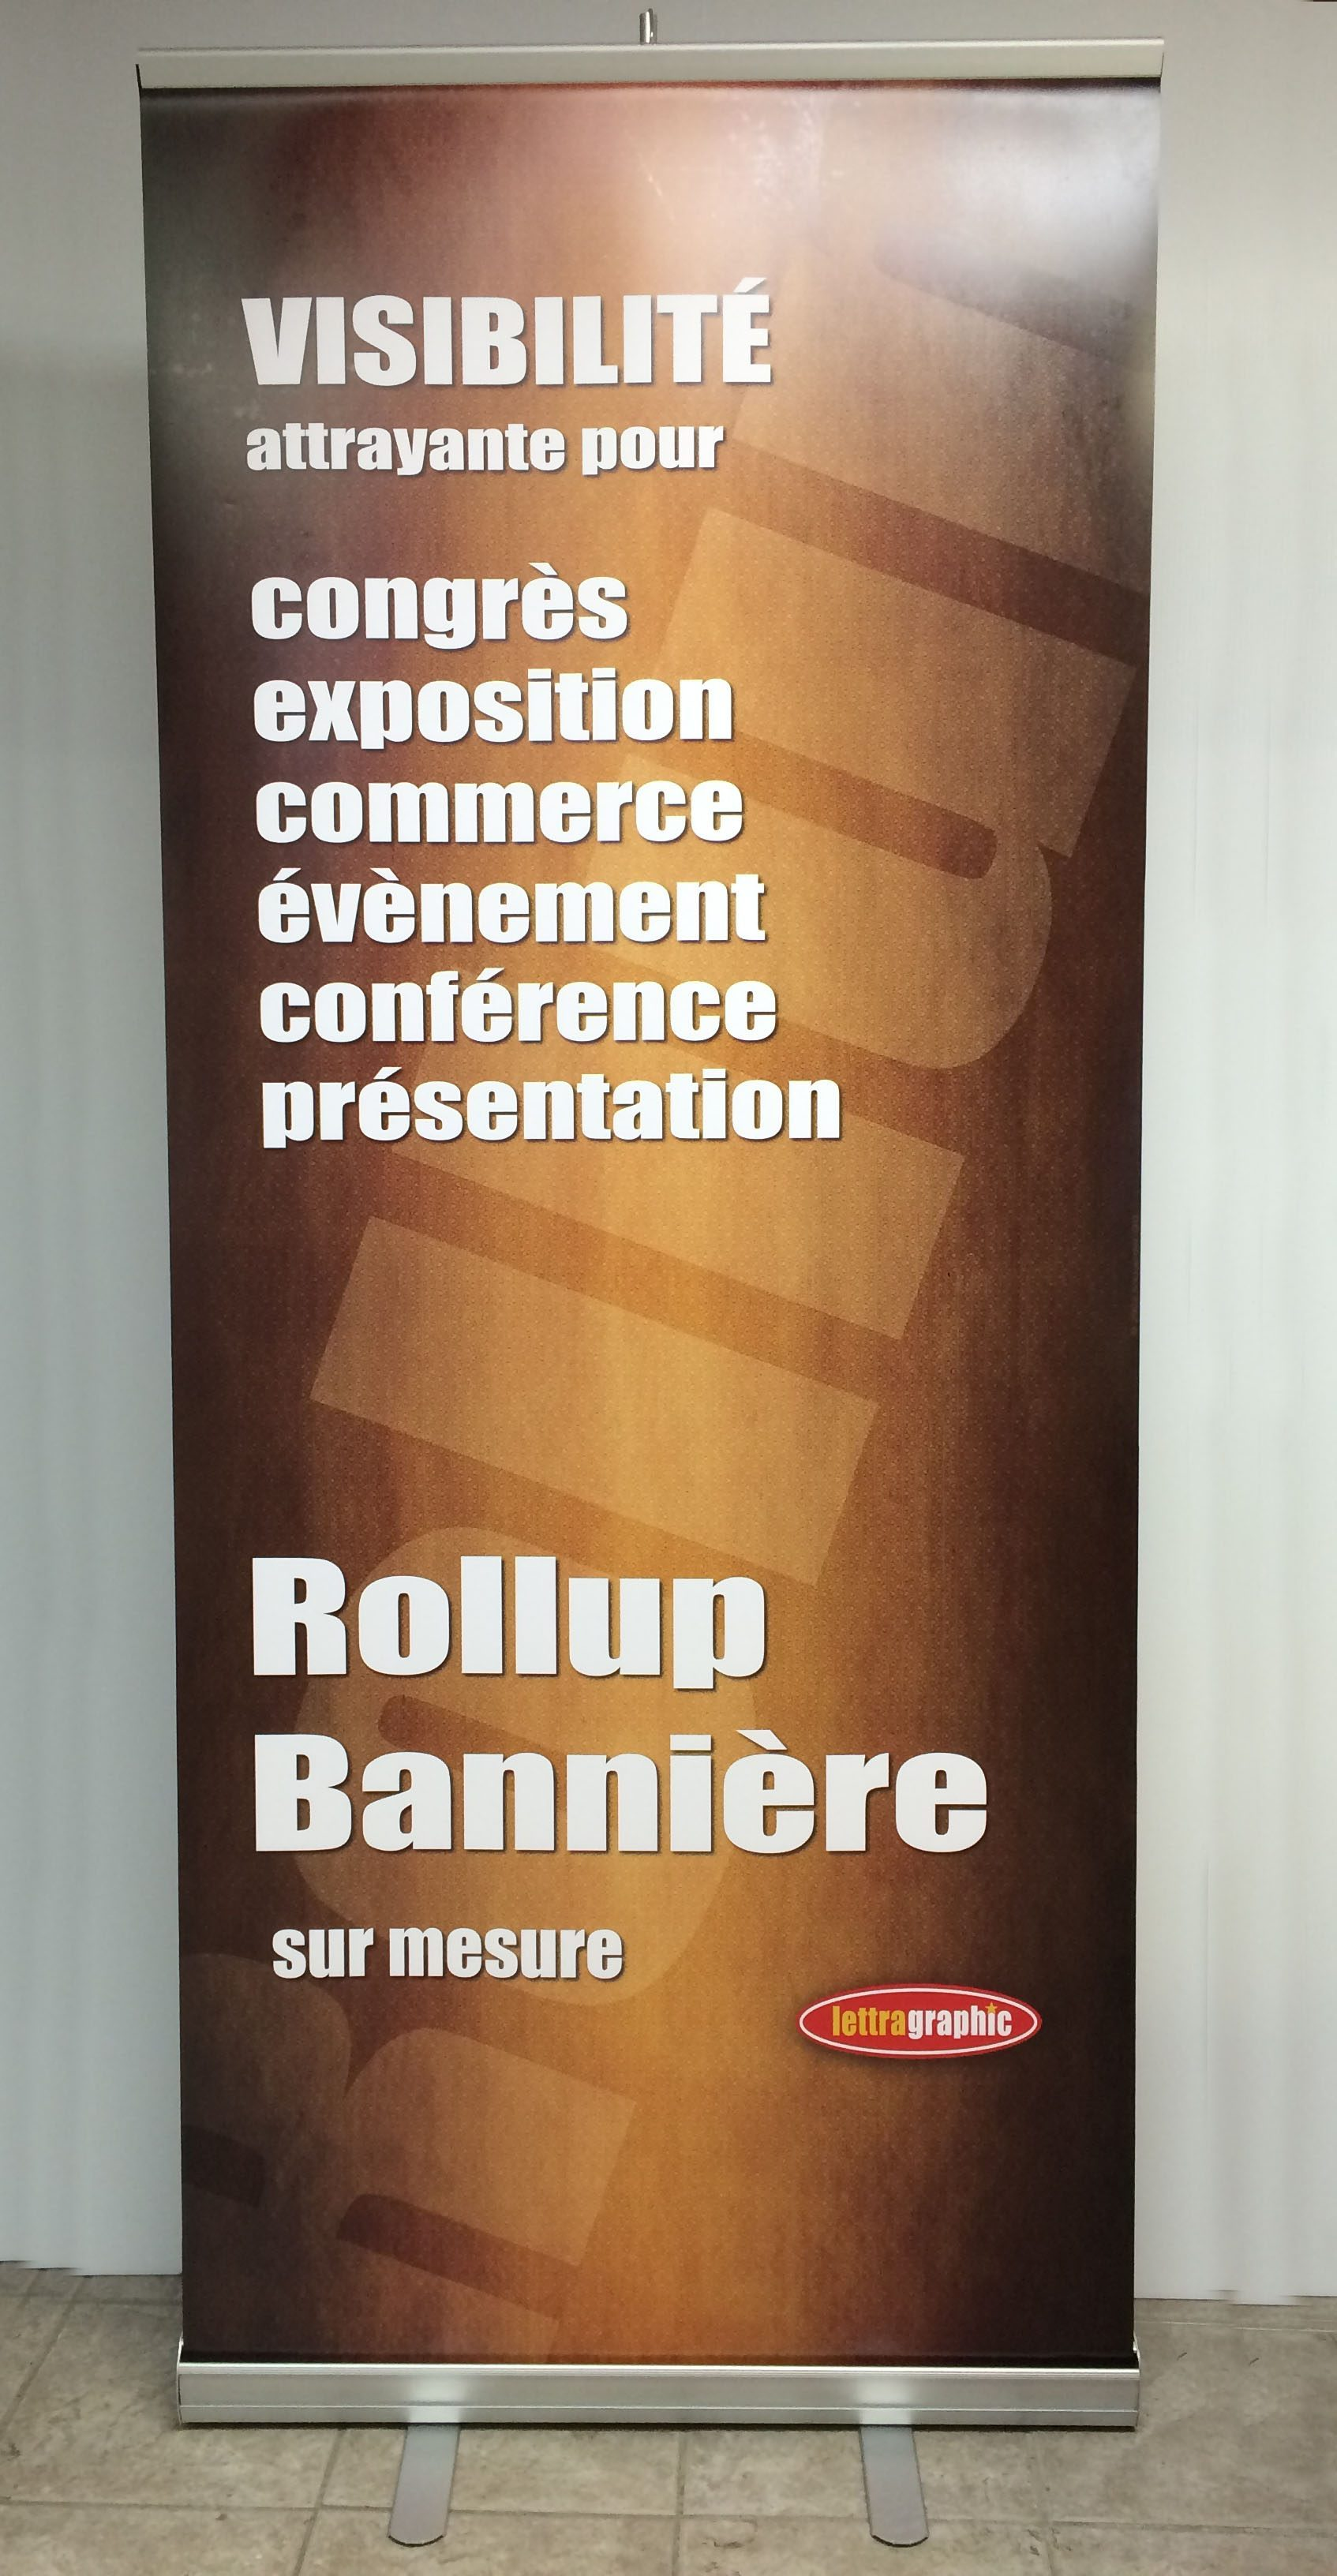 roll-up imprimerie